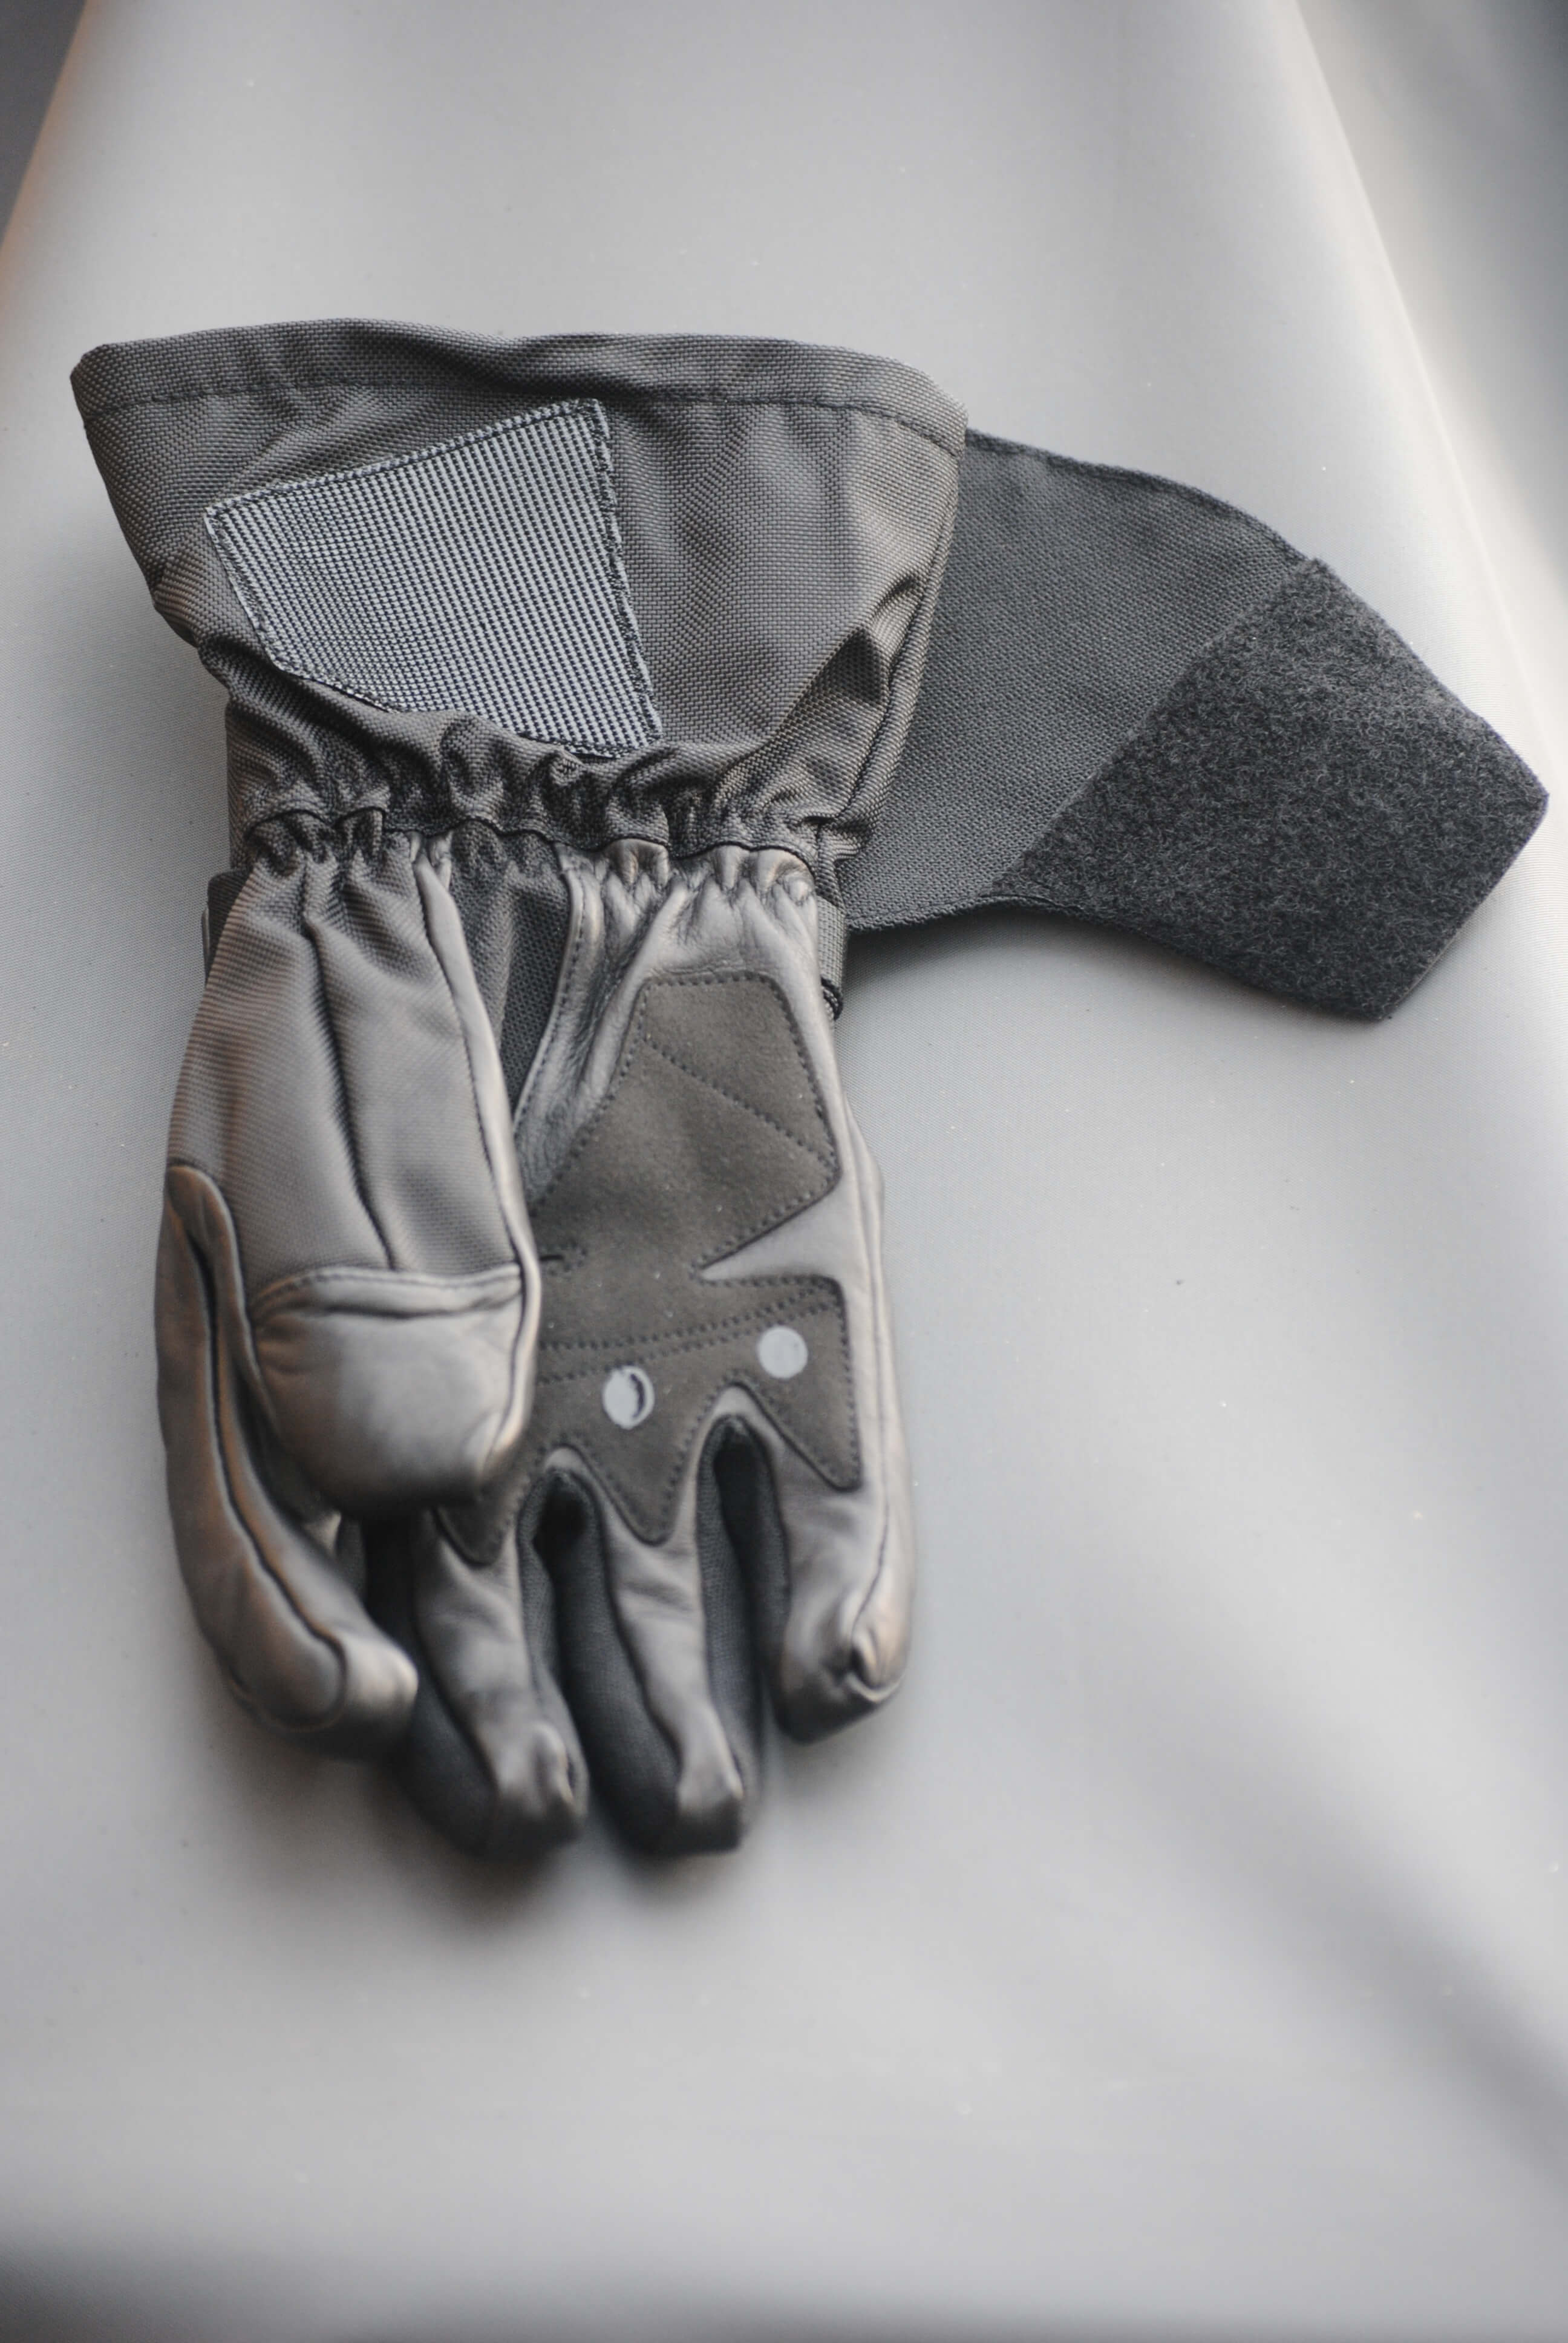 ICON Patrol Waterproof Gloves palm side up full view